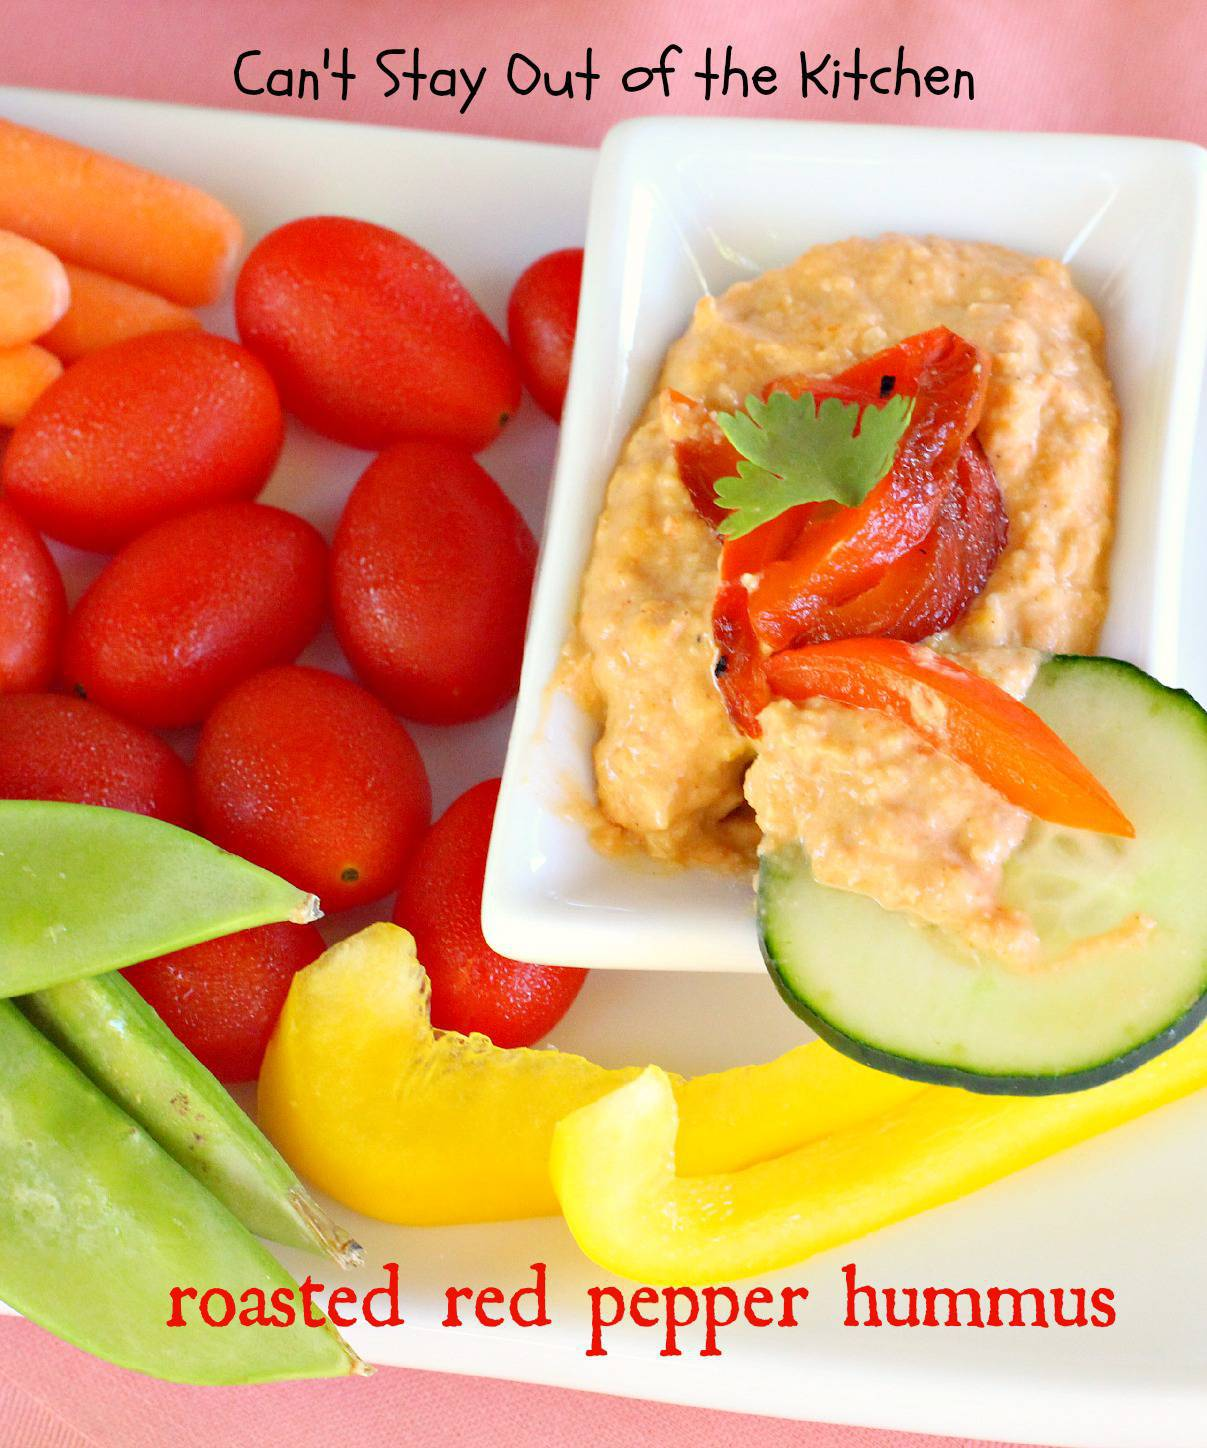 Roasted Red Pepper Hummus - Can't Stay Out of the Kitchen